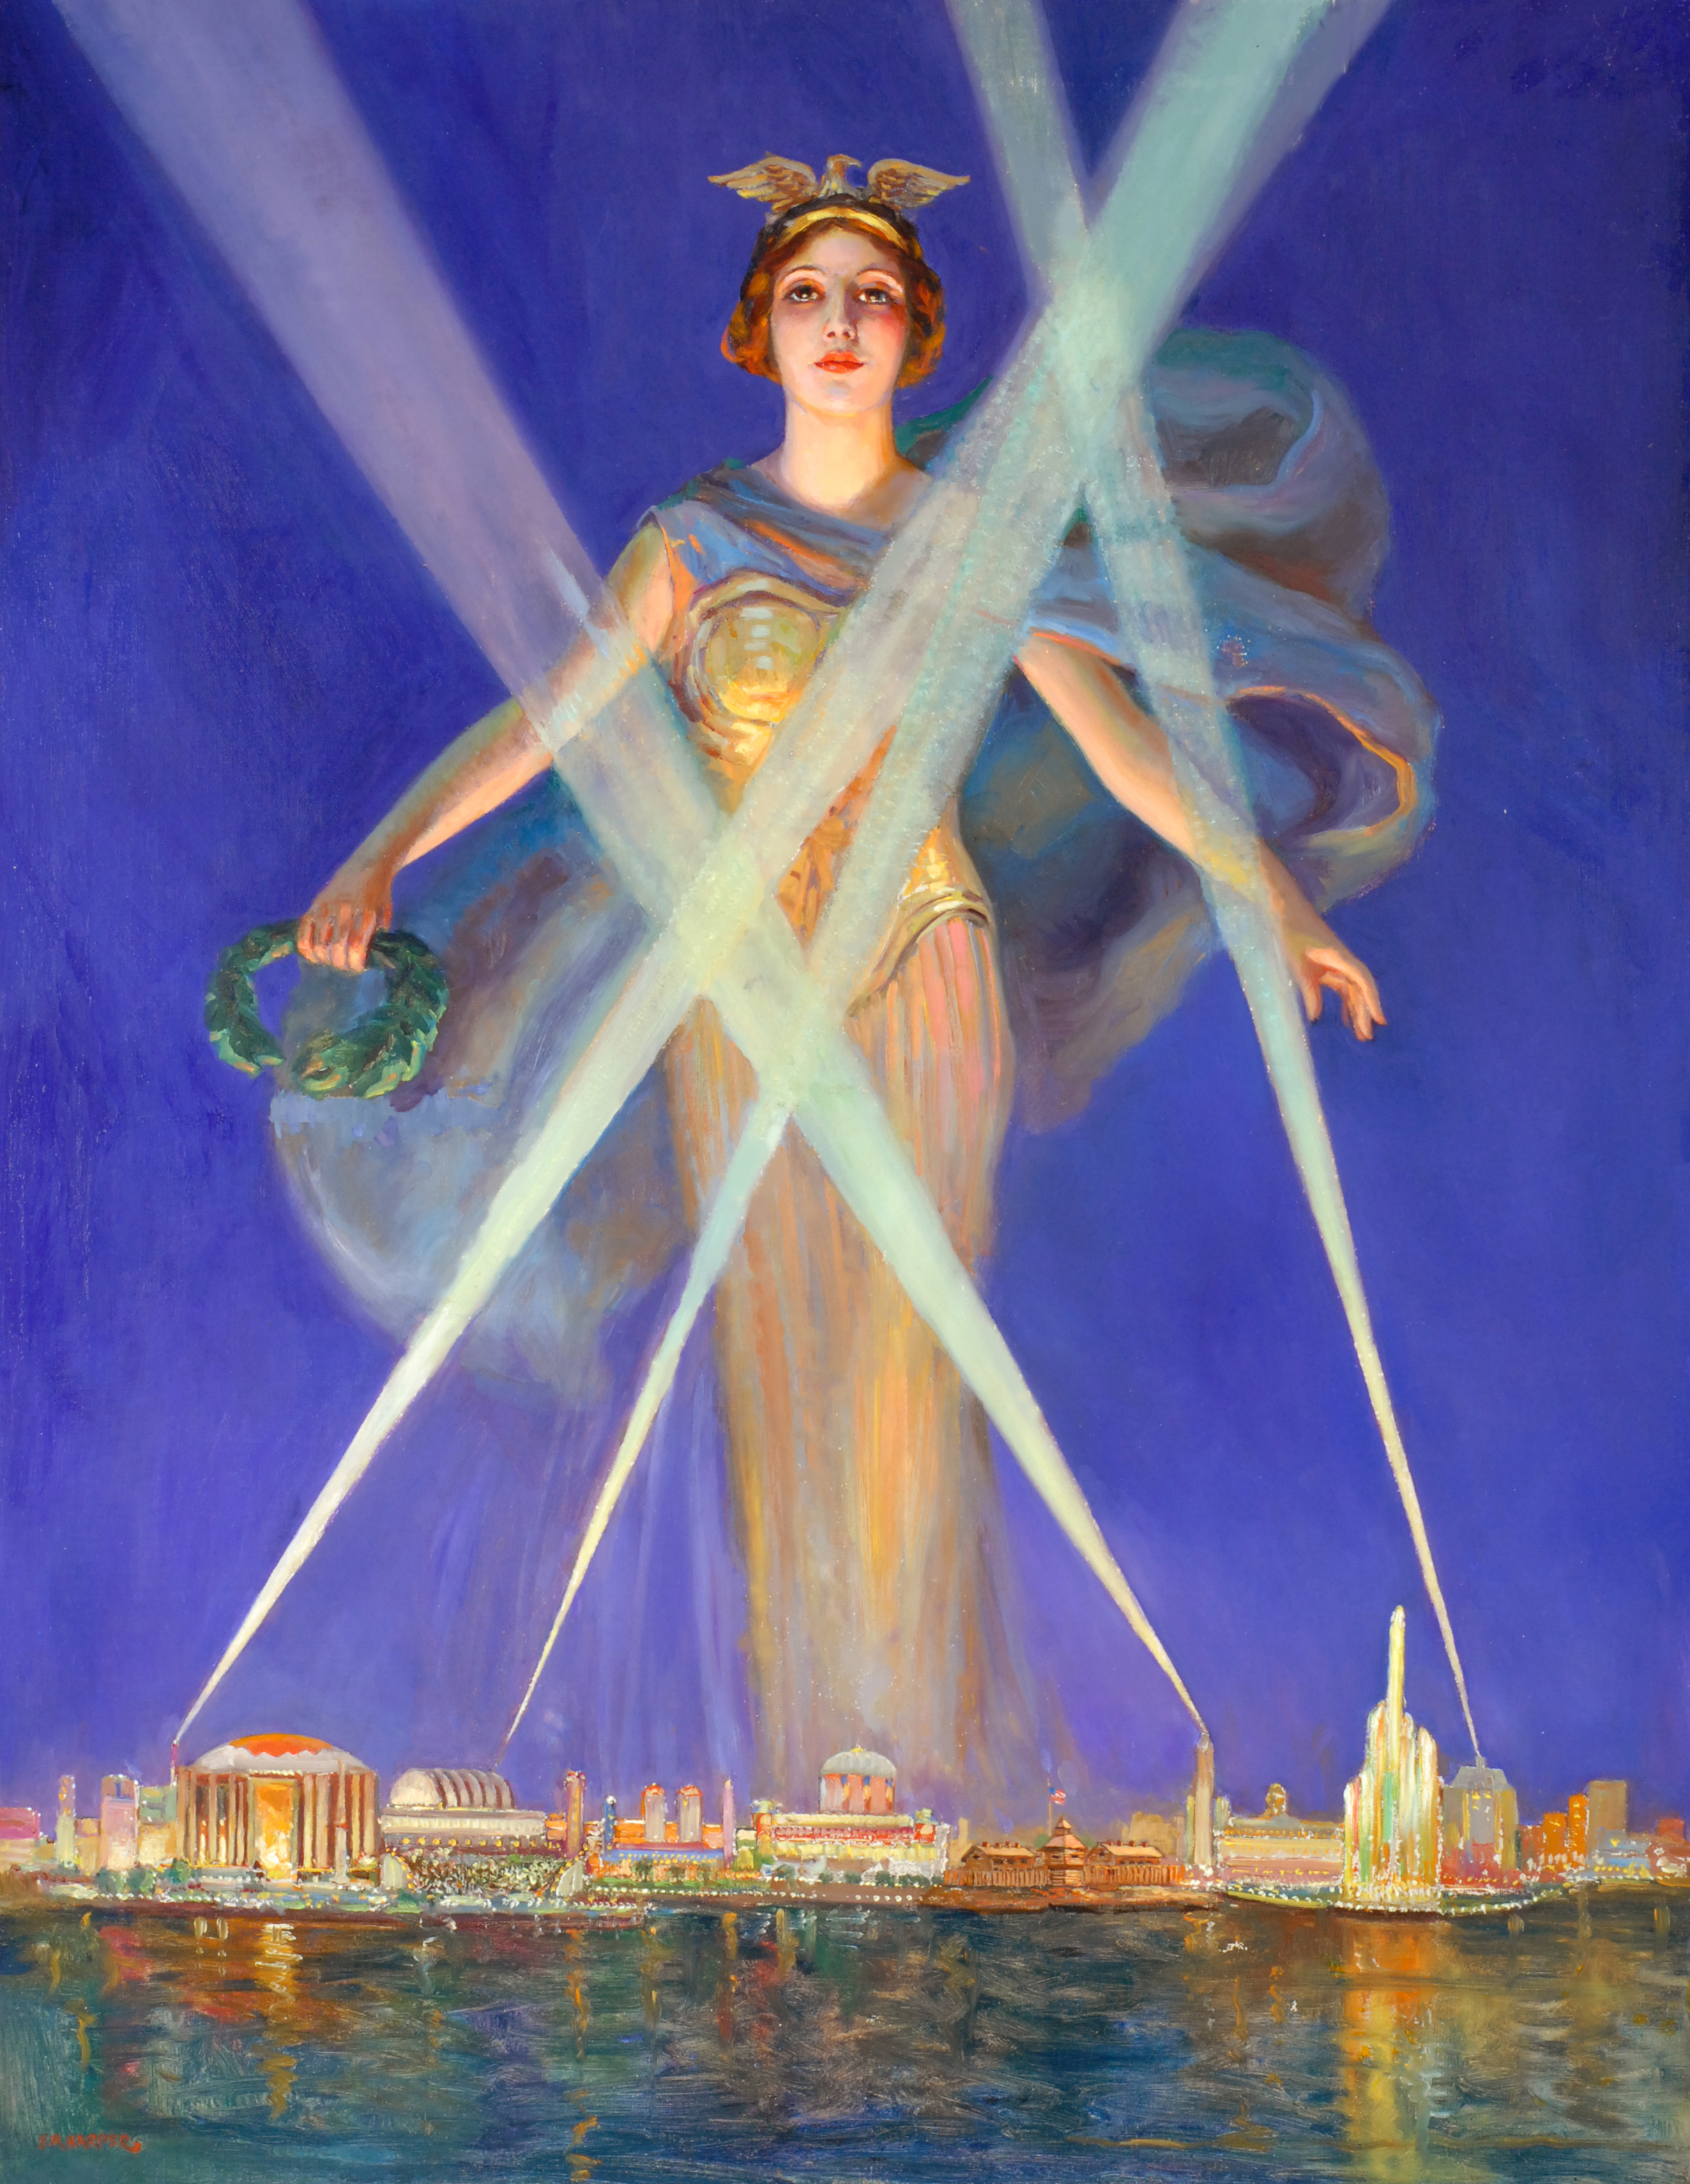 1933 Chicago World's Fair Iconic Work in Oil